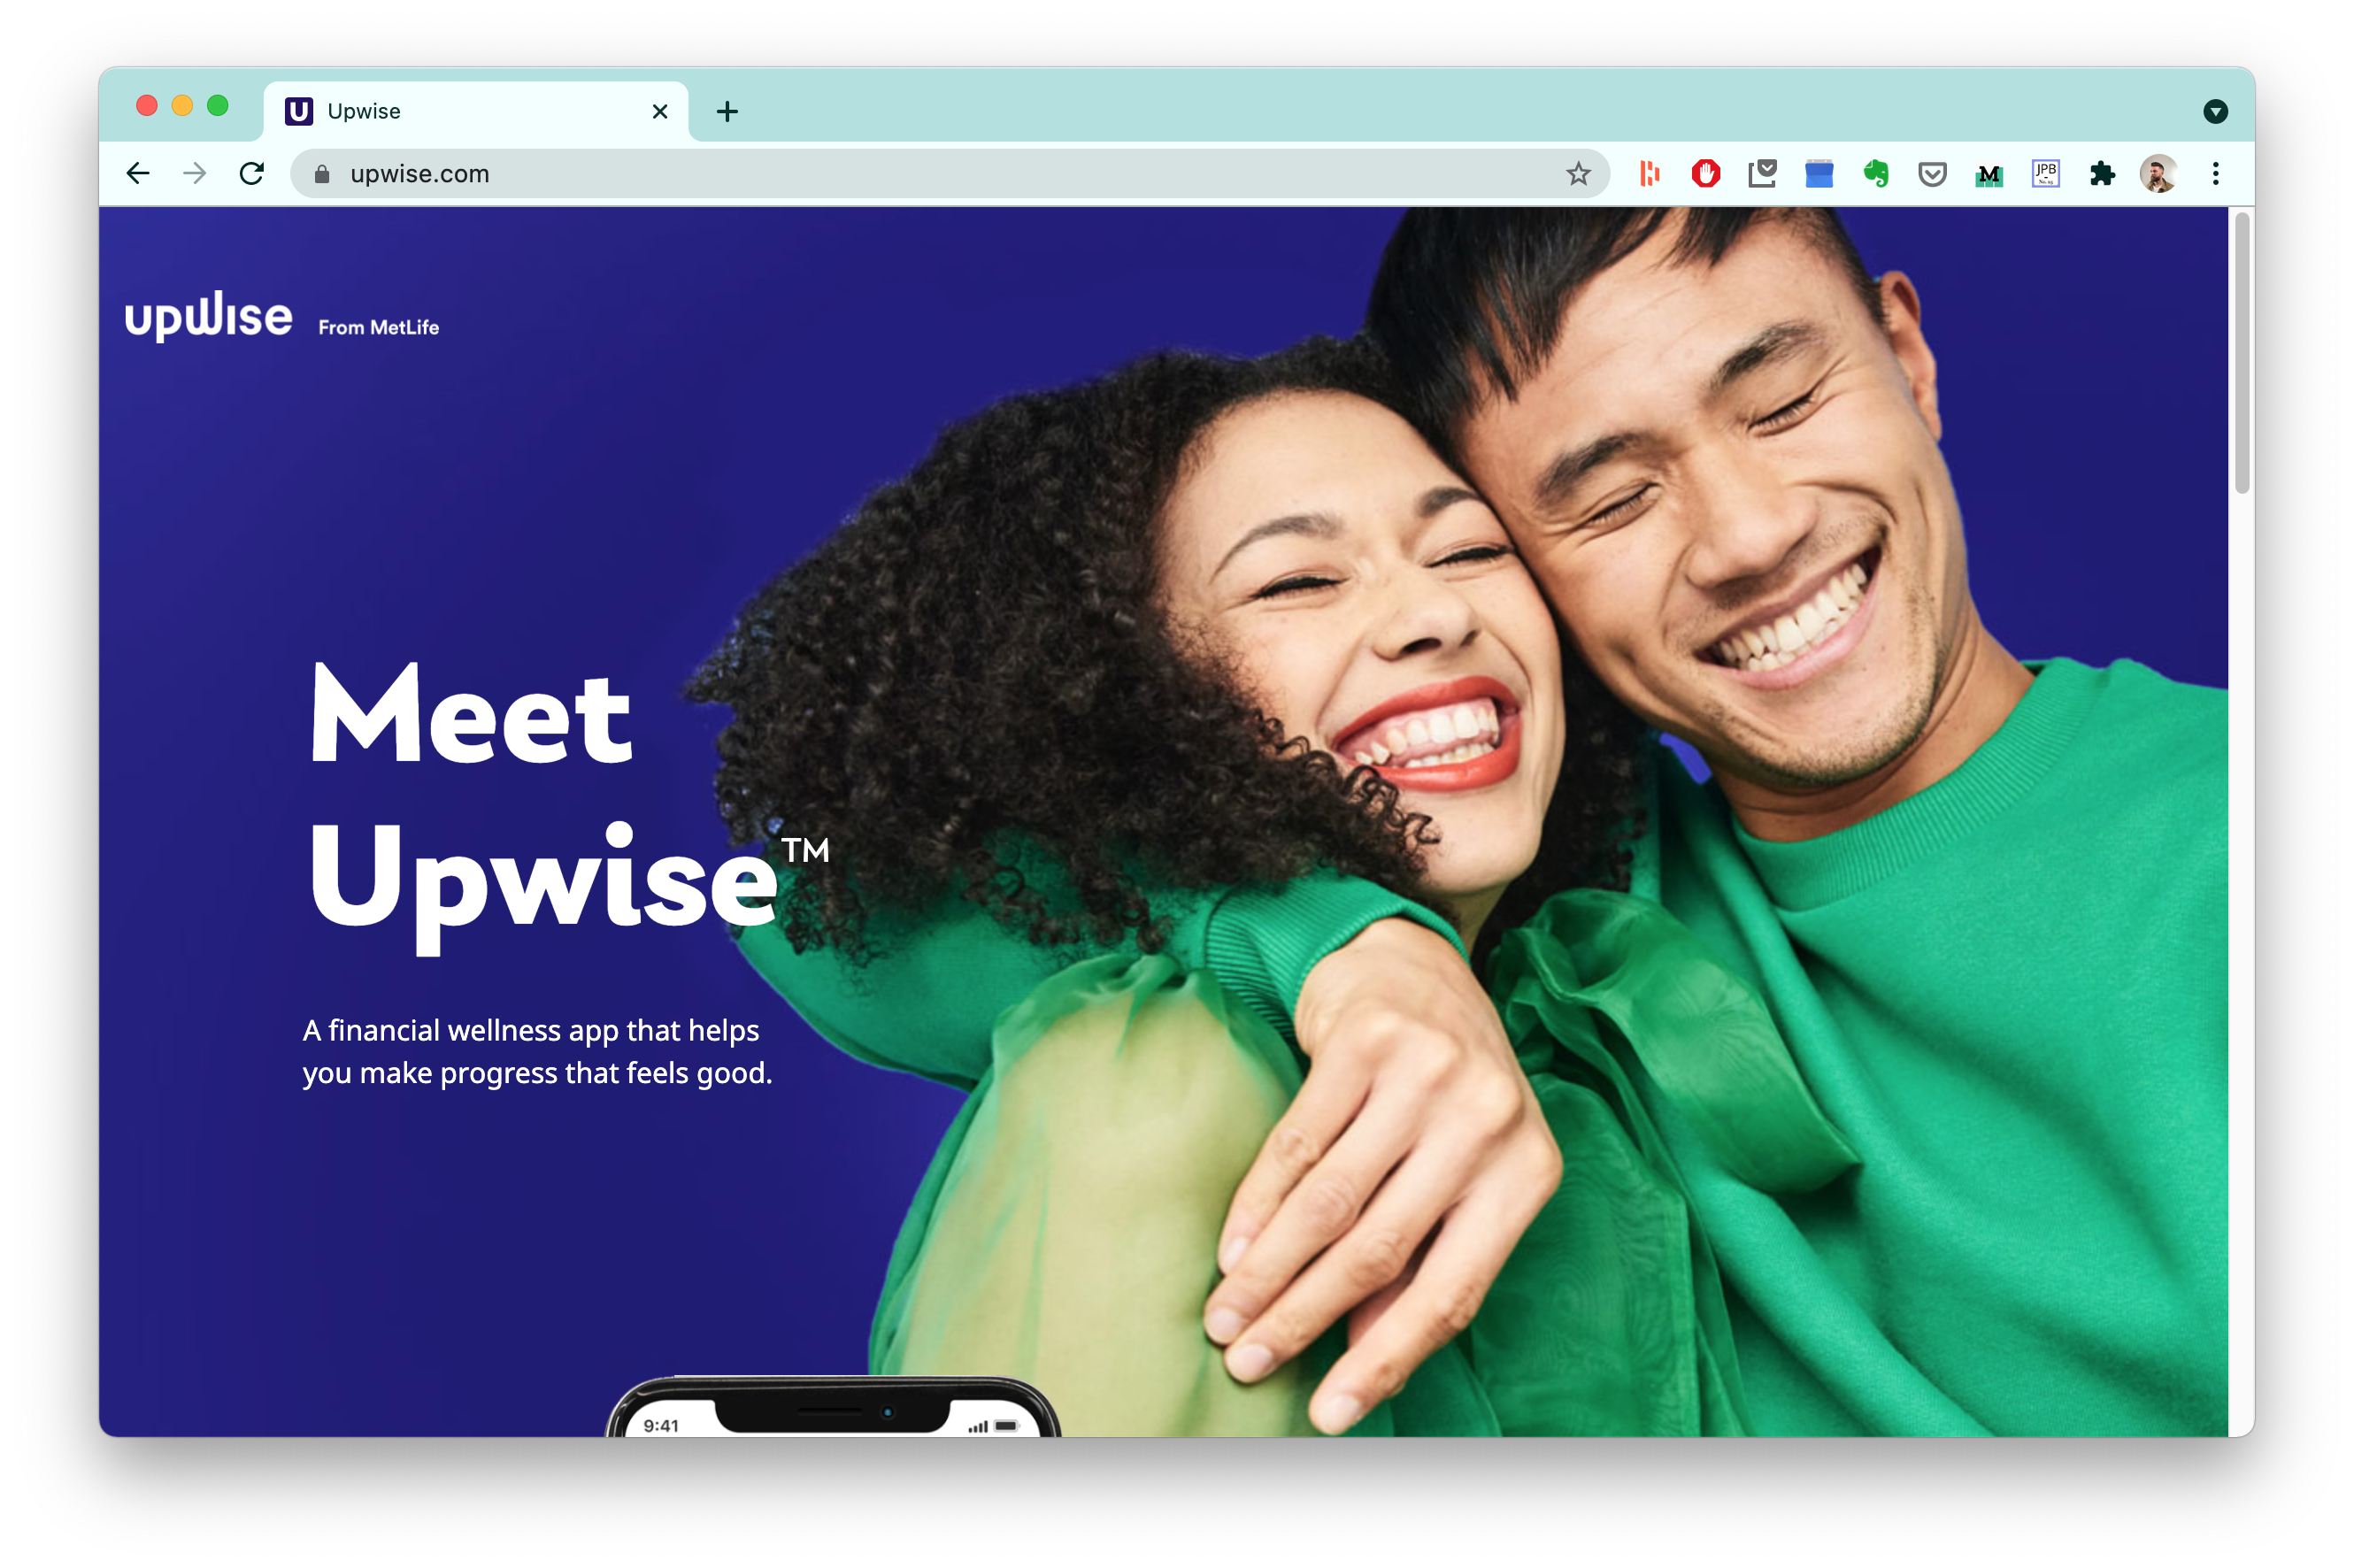 Upwise financial wellness by MetLife